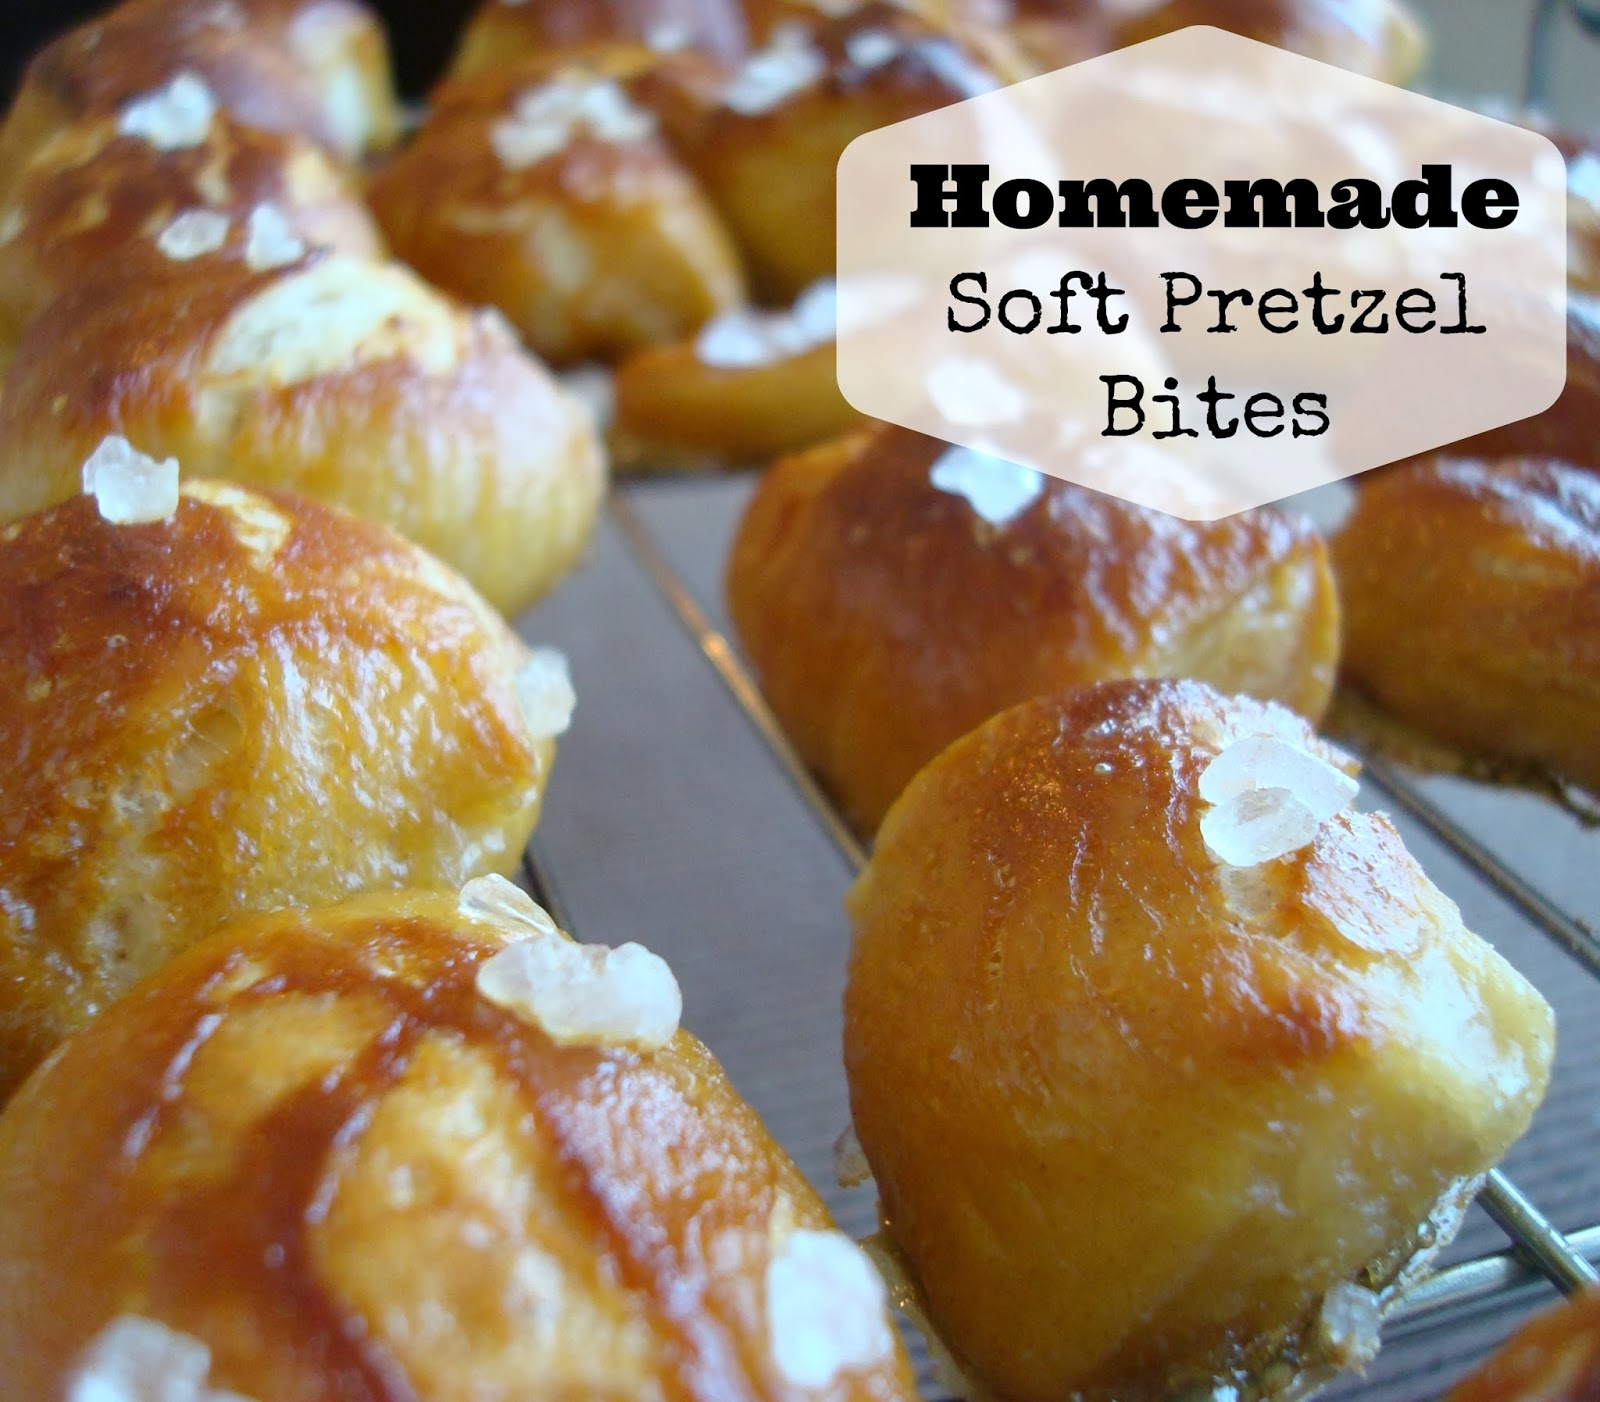 So today I'm showing off a super popular recipe that would be a perfect addition to any Super Bowl Party! Homemade Soft Pretzel Bites!